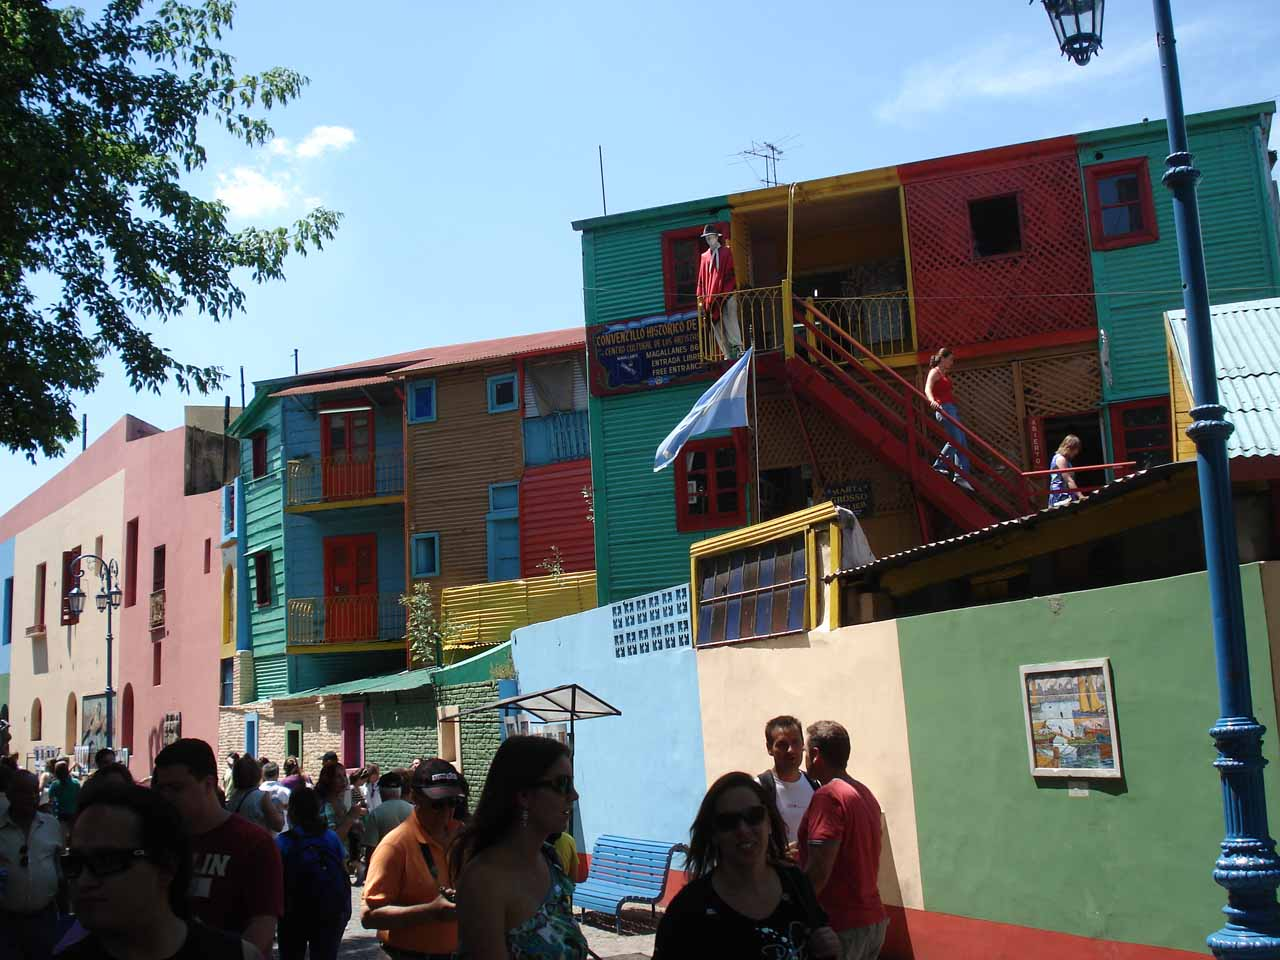 More of the colorful houses in El Caminito